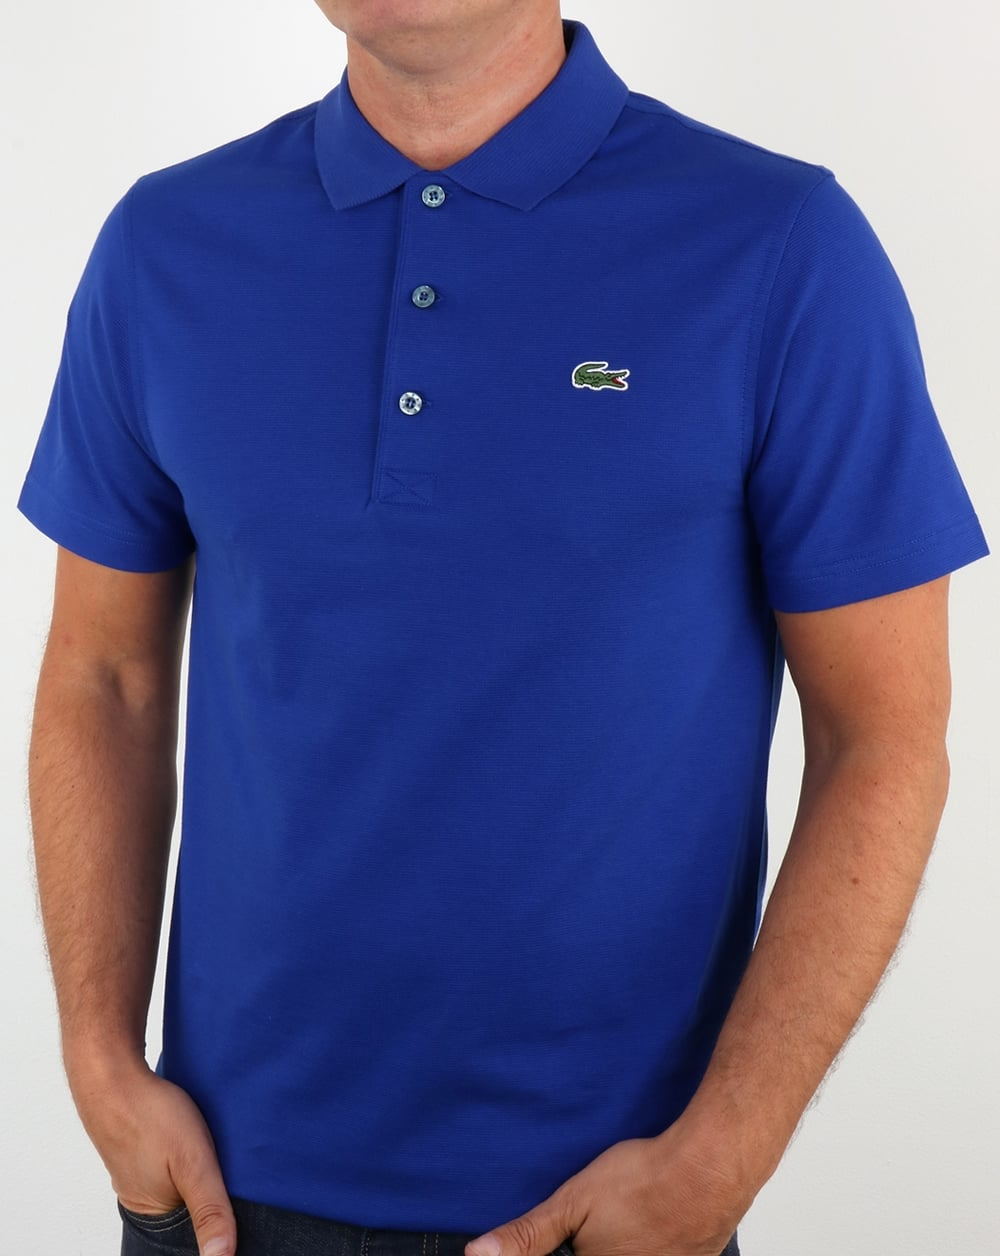 lacoste polo shirt french blue men 39 s pique cotton